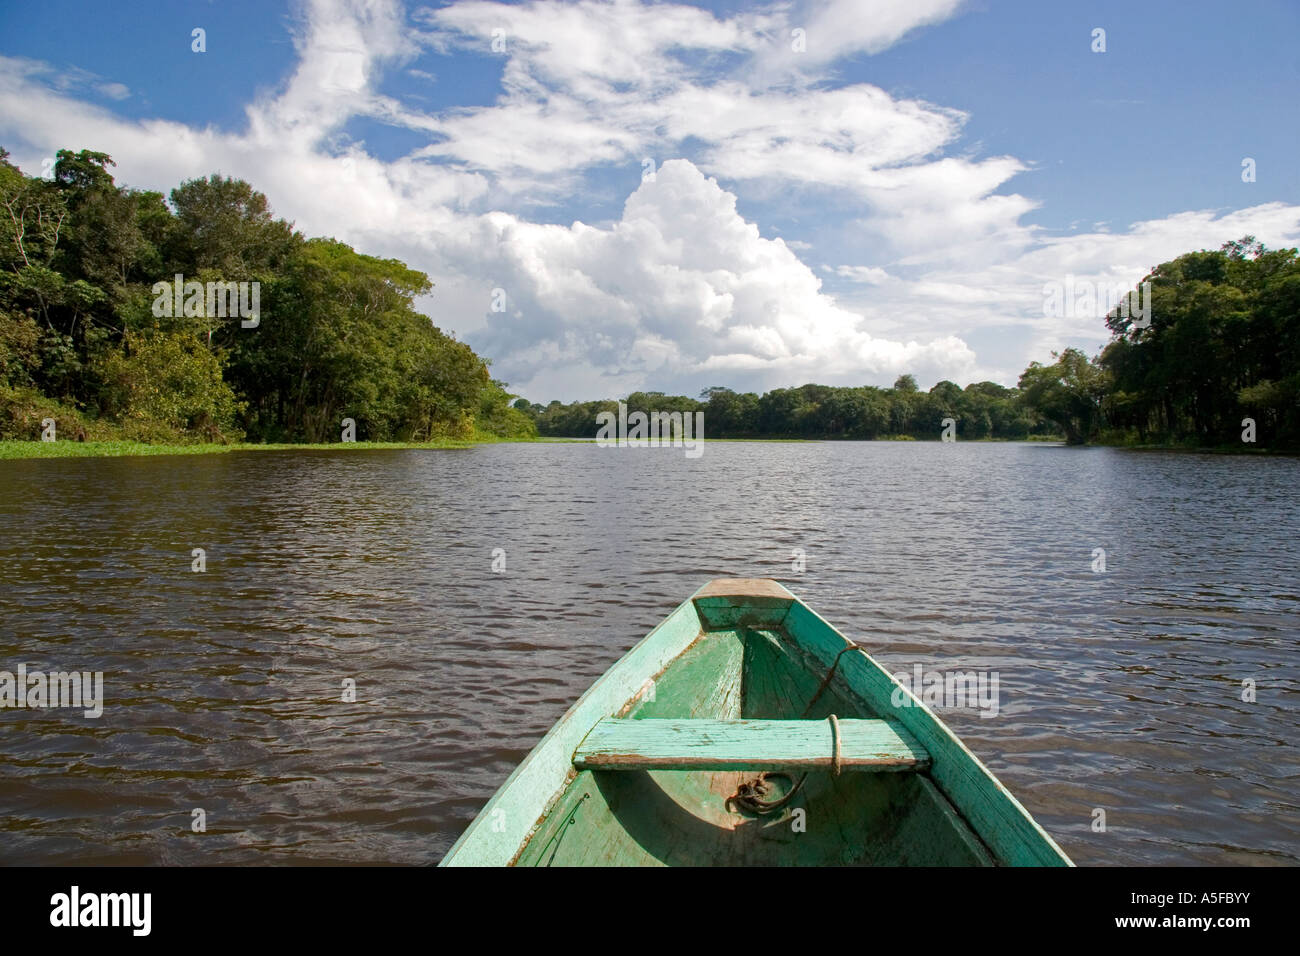 The bow of a dugout canoe on the Arasa River in the Amazon jungle near Manaus Brazil - Stock Image